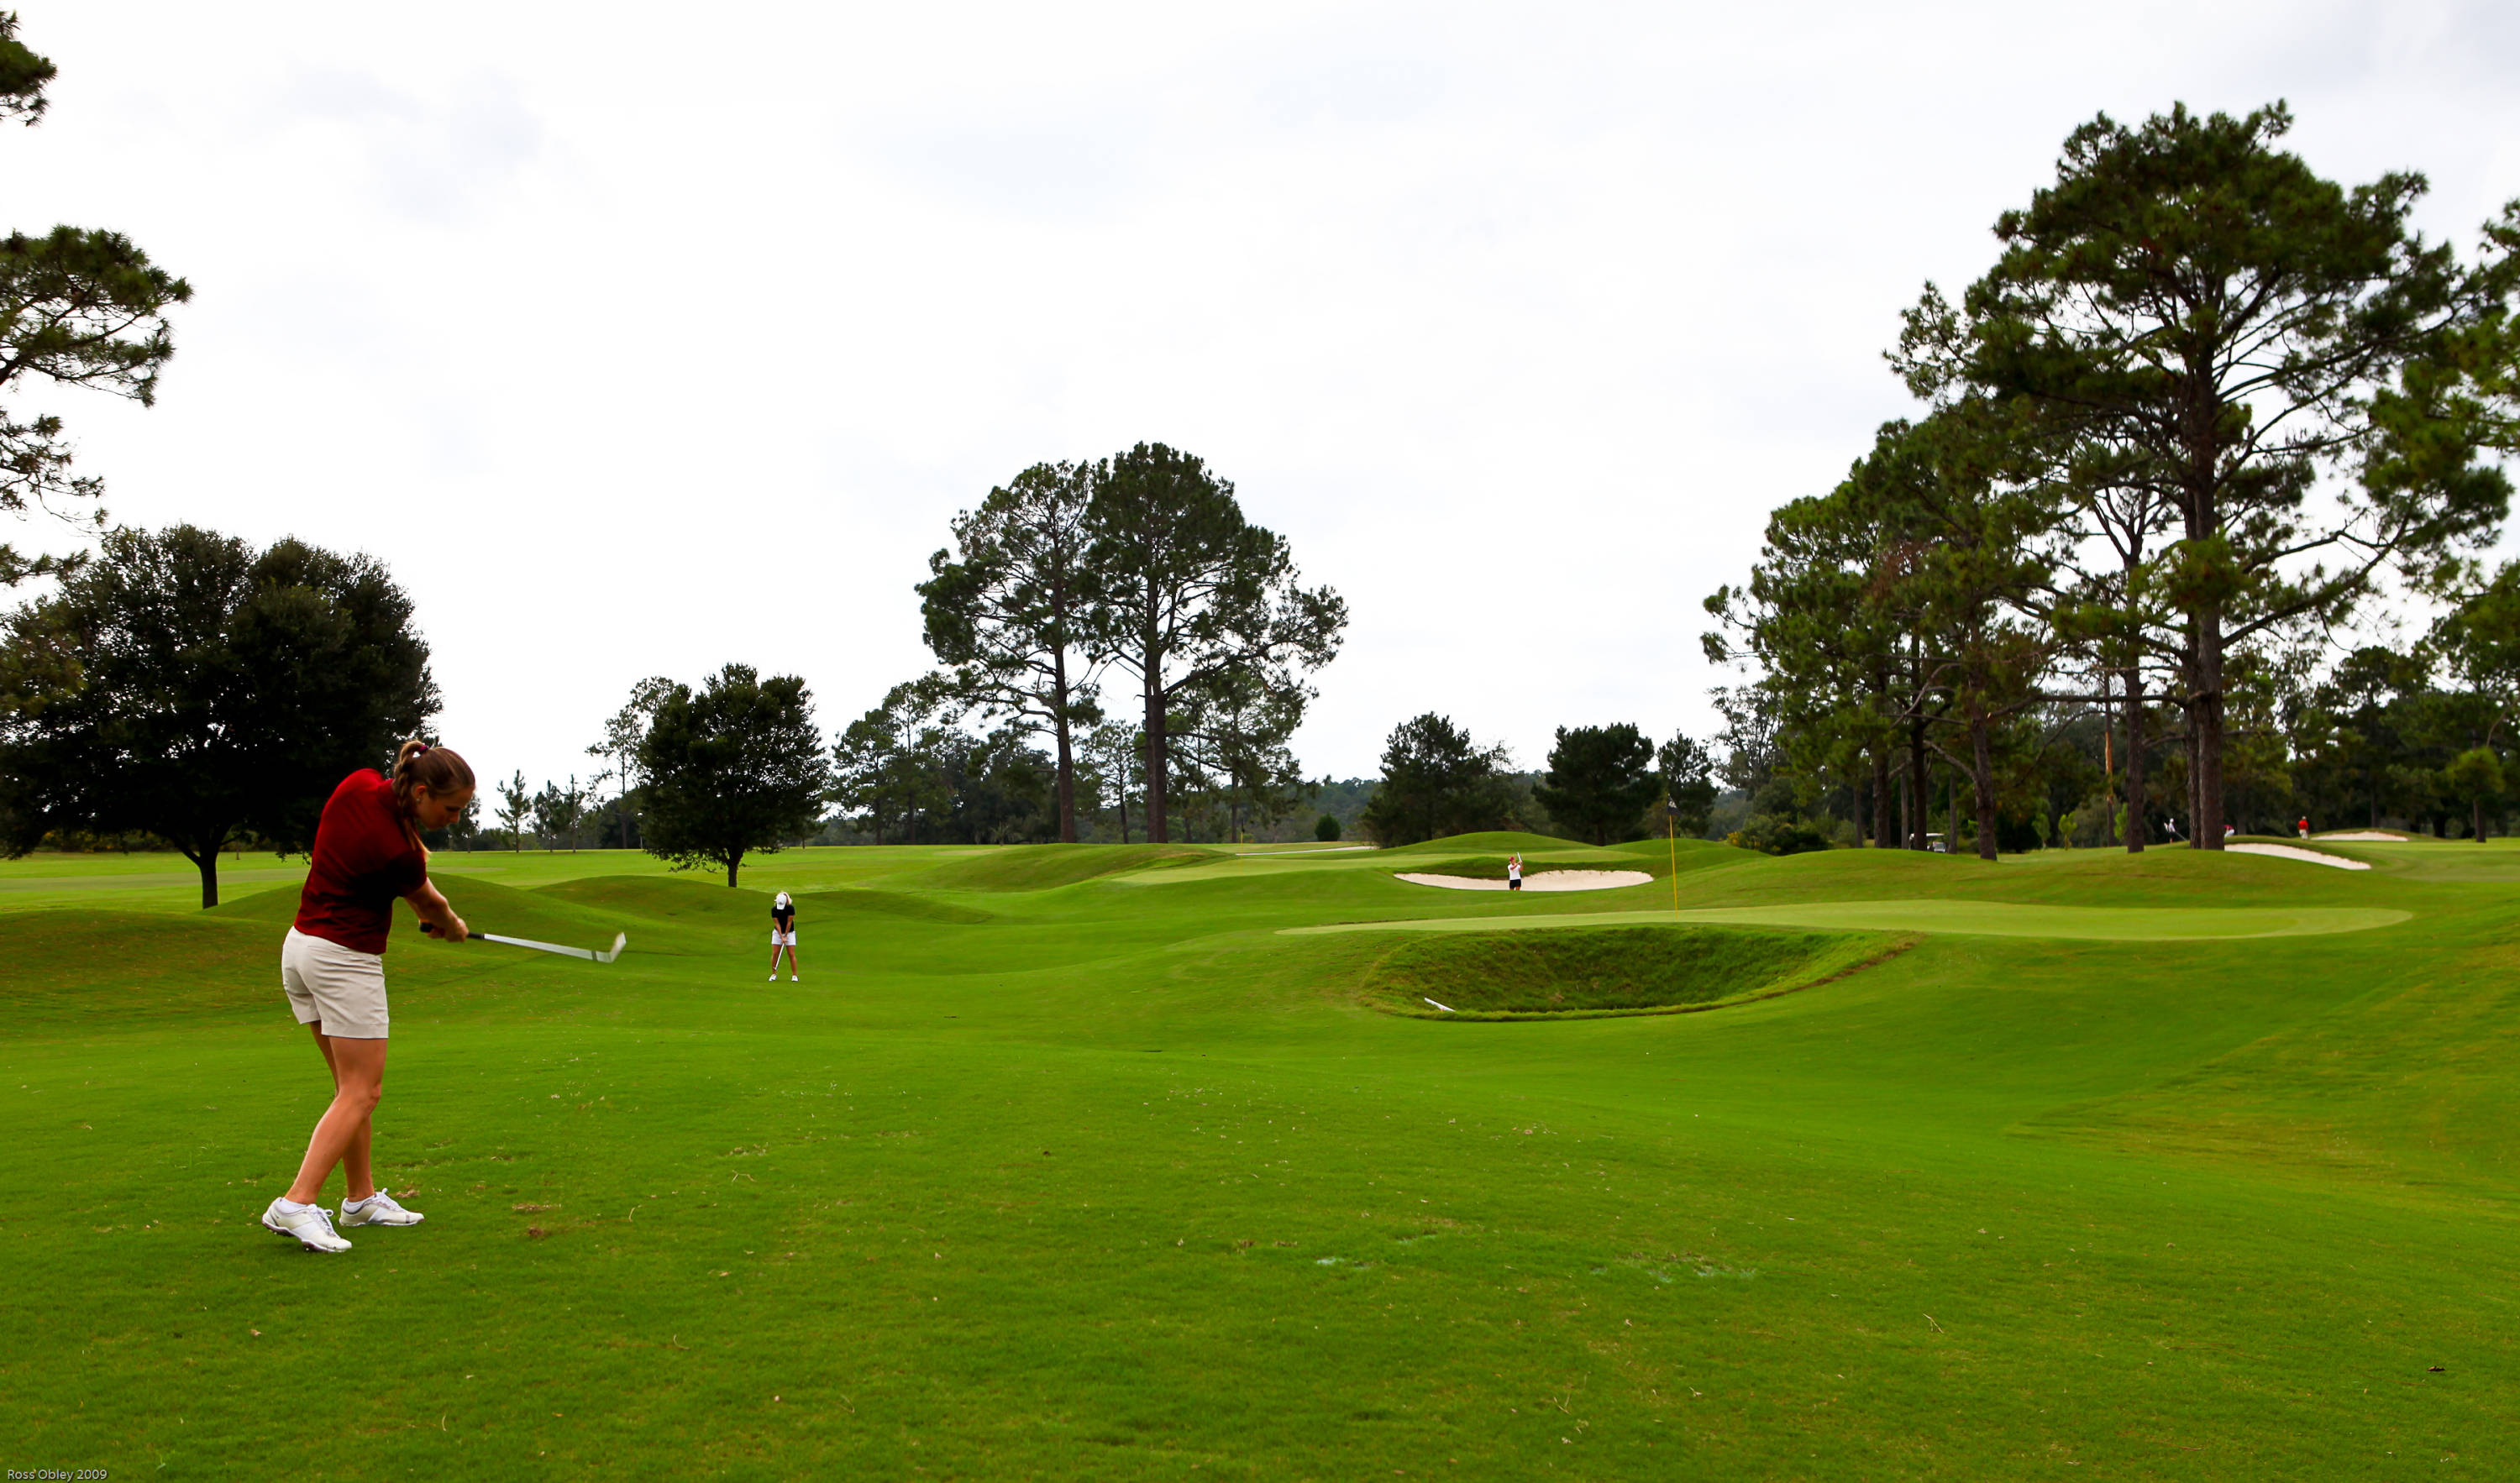 Golf Chipping Area